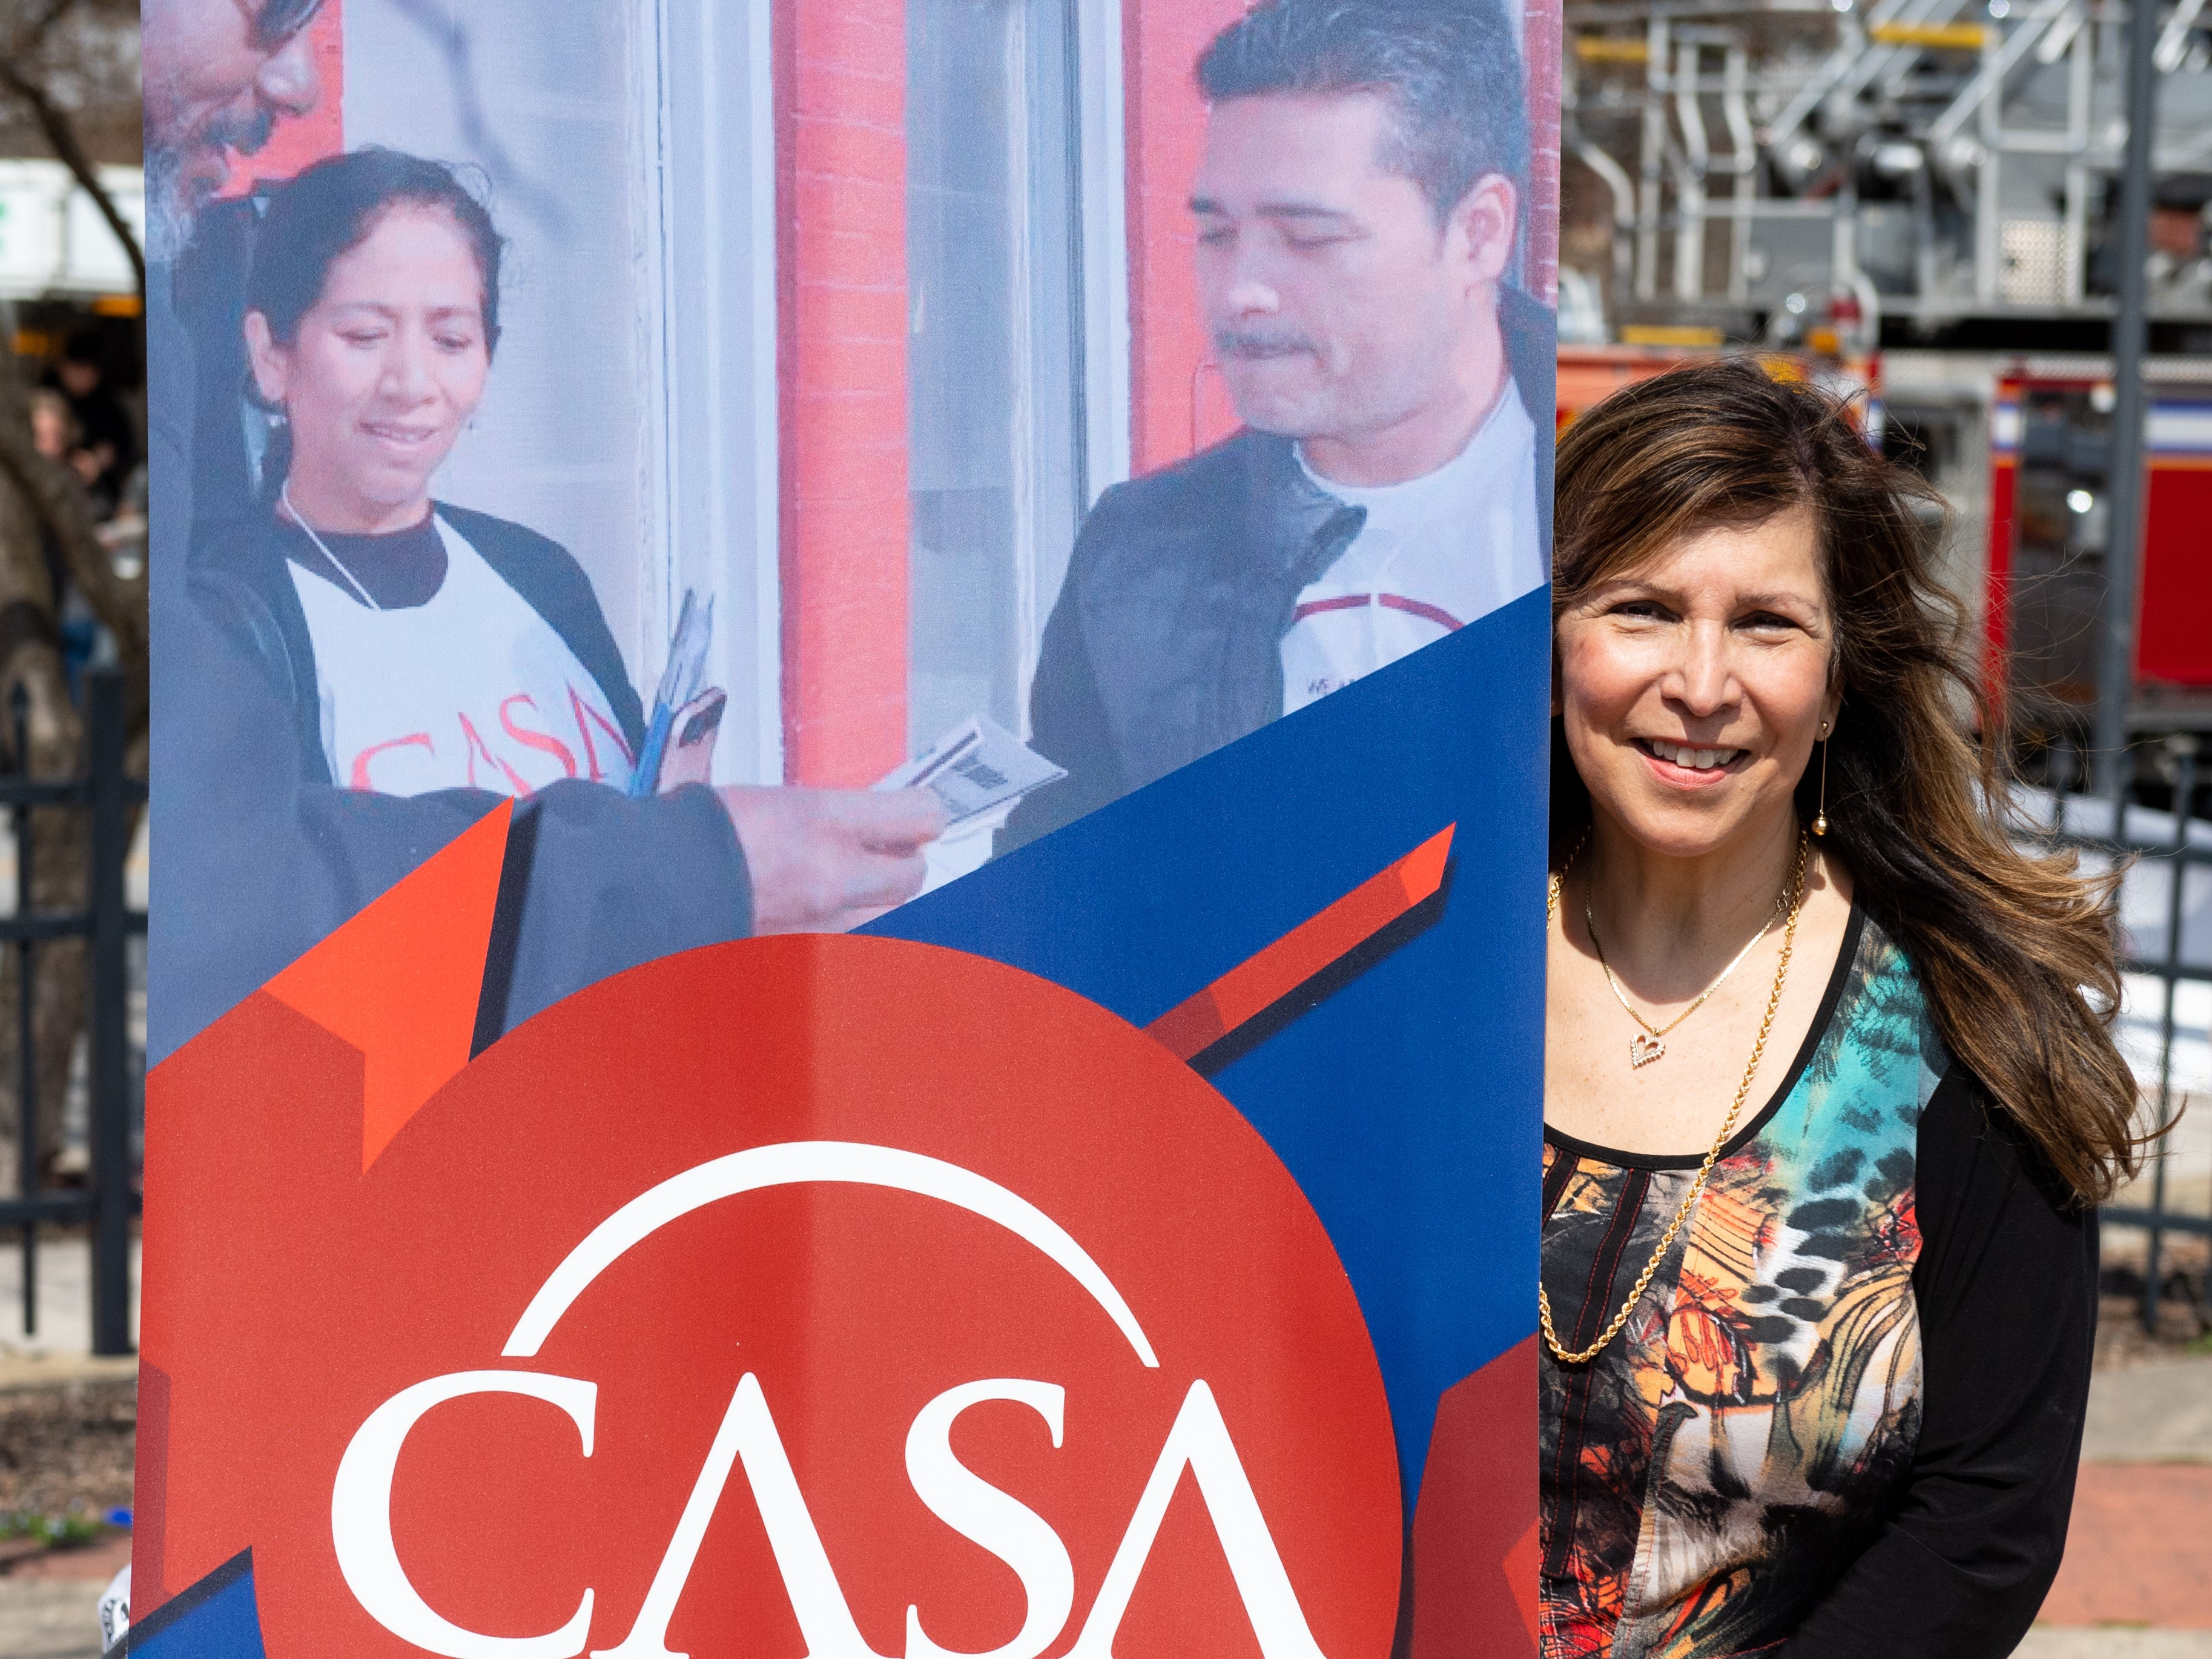 Delma Rivera poses with the CASA sign during the Adelante Festival at Renaissance Park, March 30, 2019.